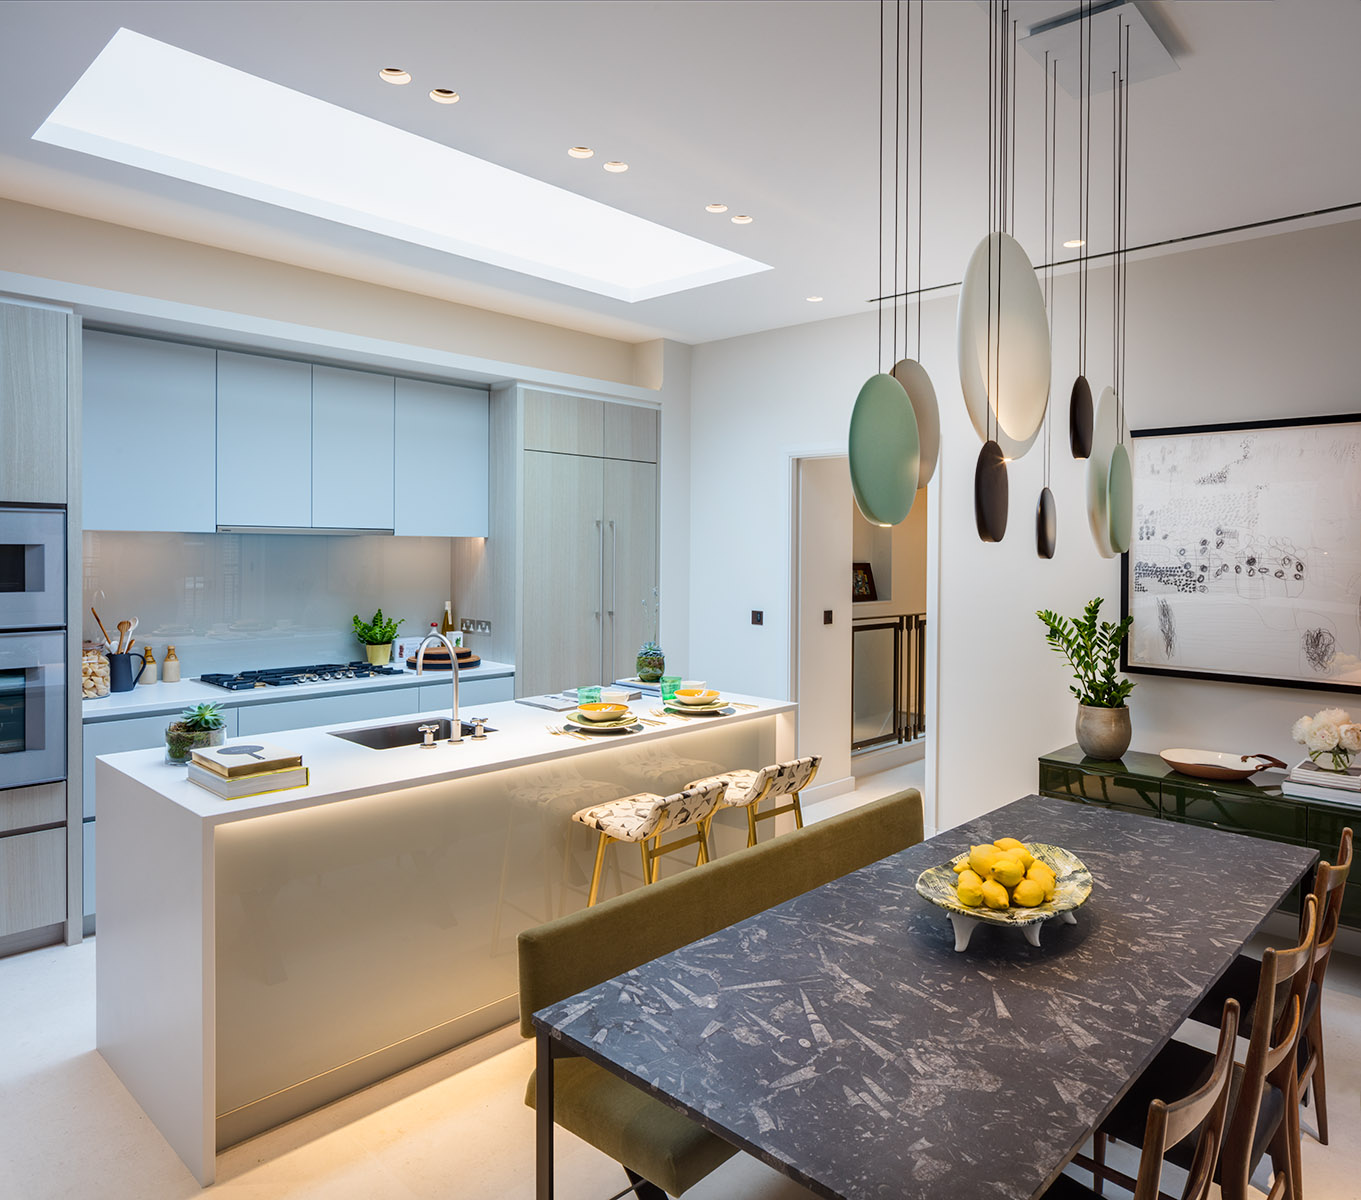 Dining / Kitchen area of contemporary interior design apartment in Russell Court. Large slate table with high-end bespoke internal fixtures and fittings in kitchen